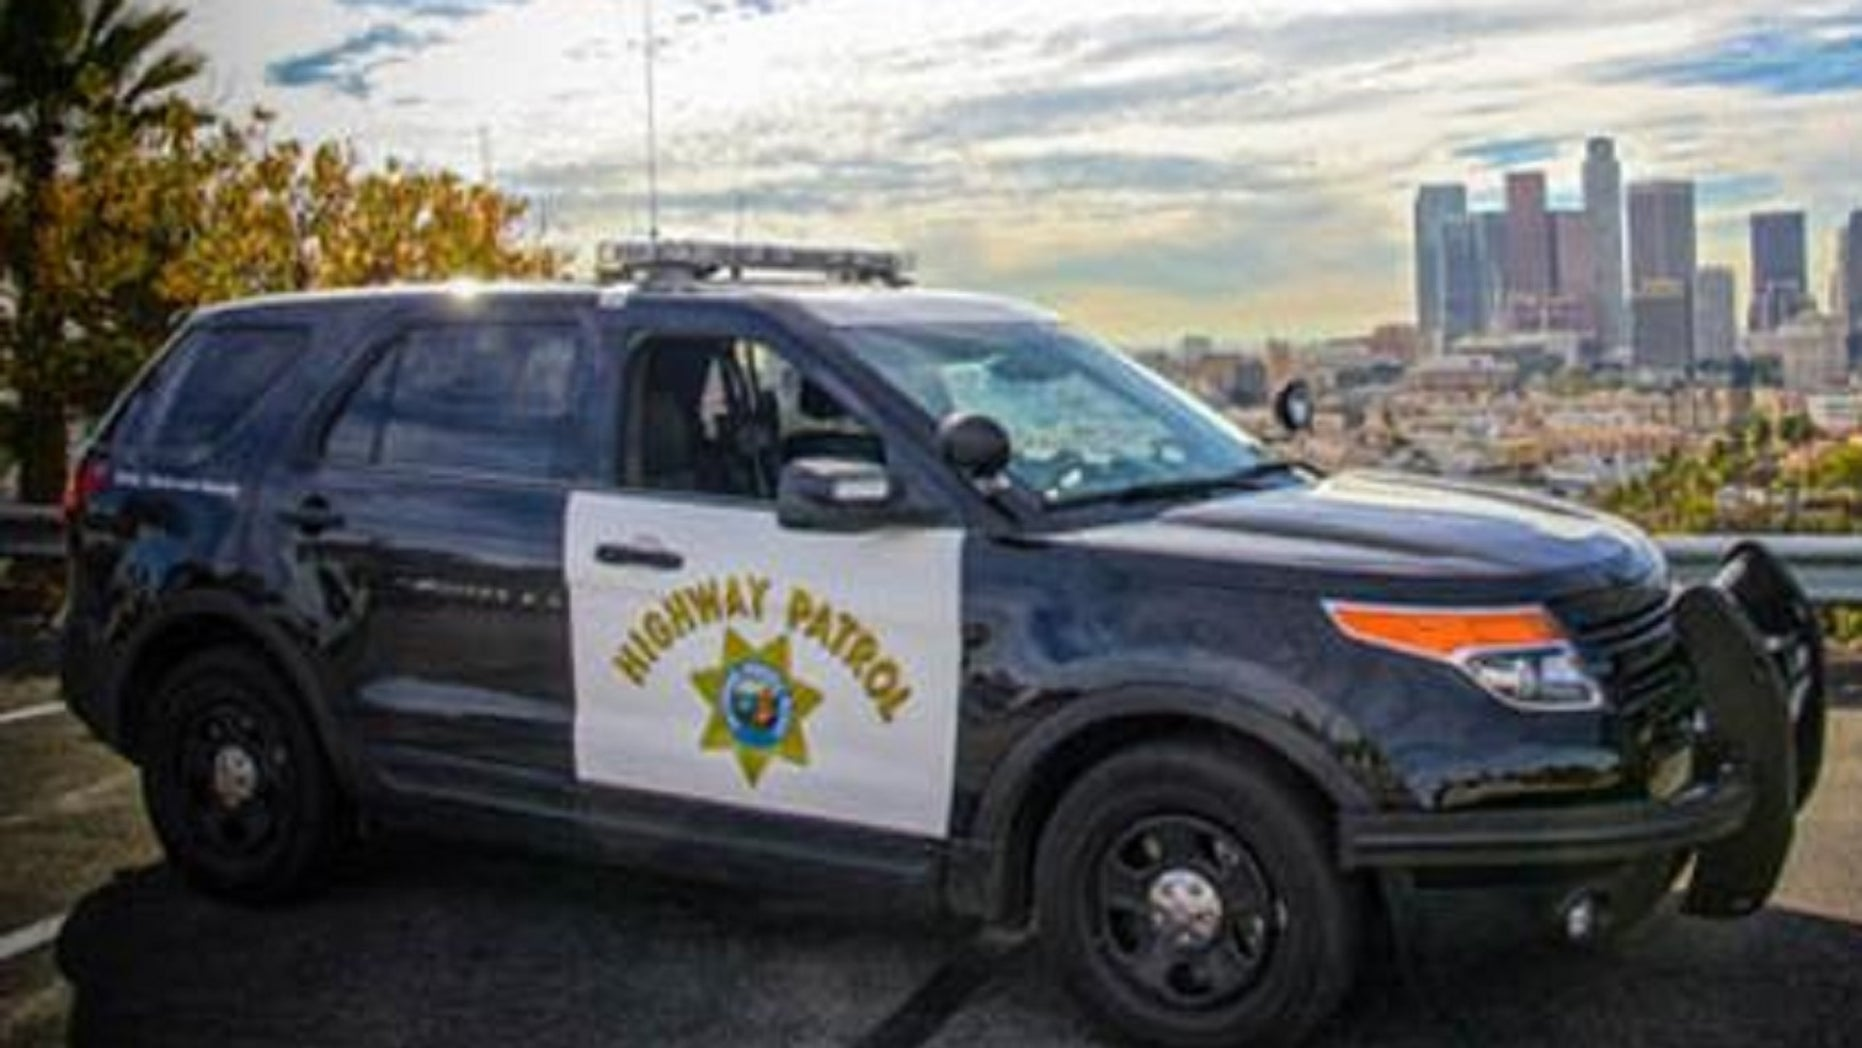 The number of people killed in DUI crashes in California over the extended New Year's weekend increased over last year's figure, authorities said Wednesday.